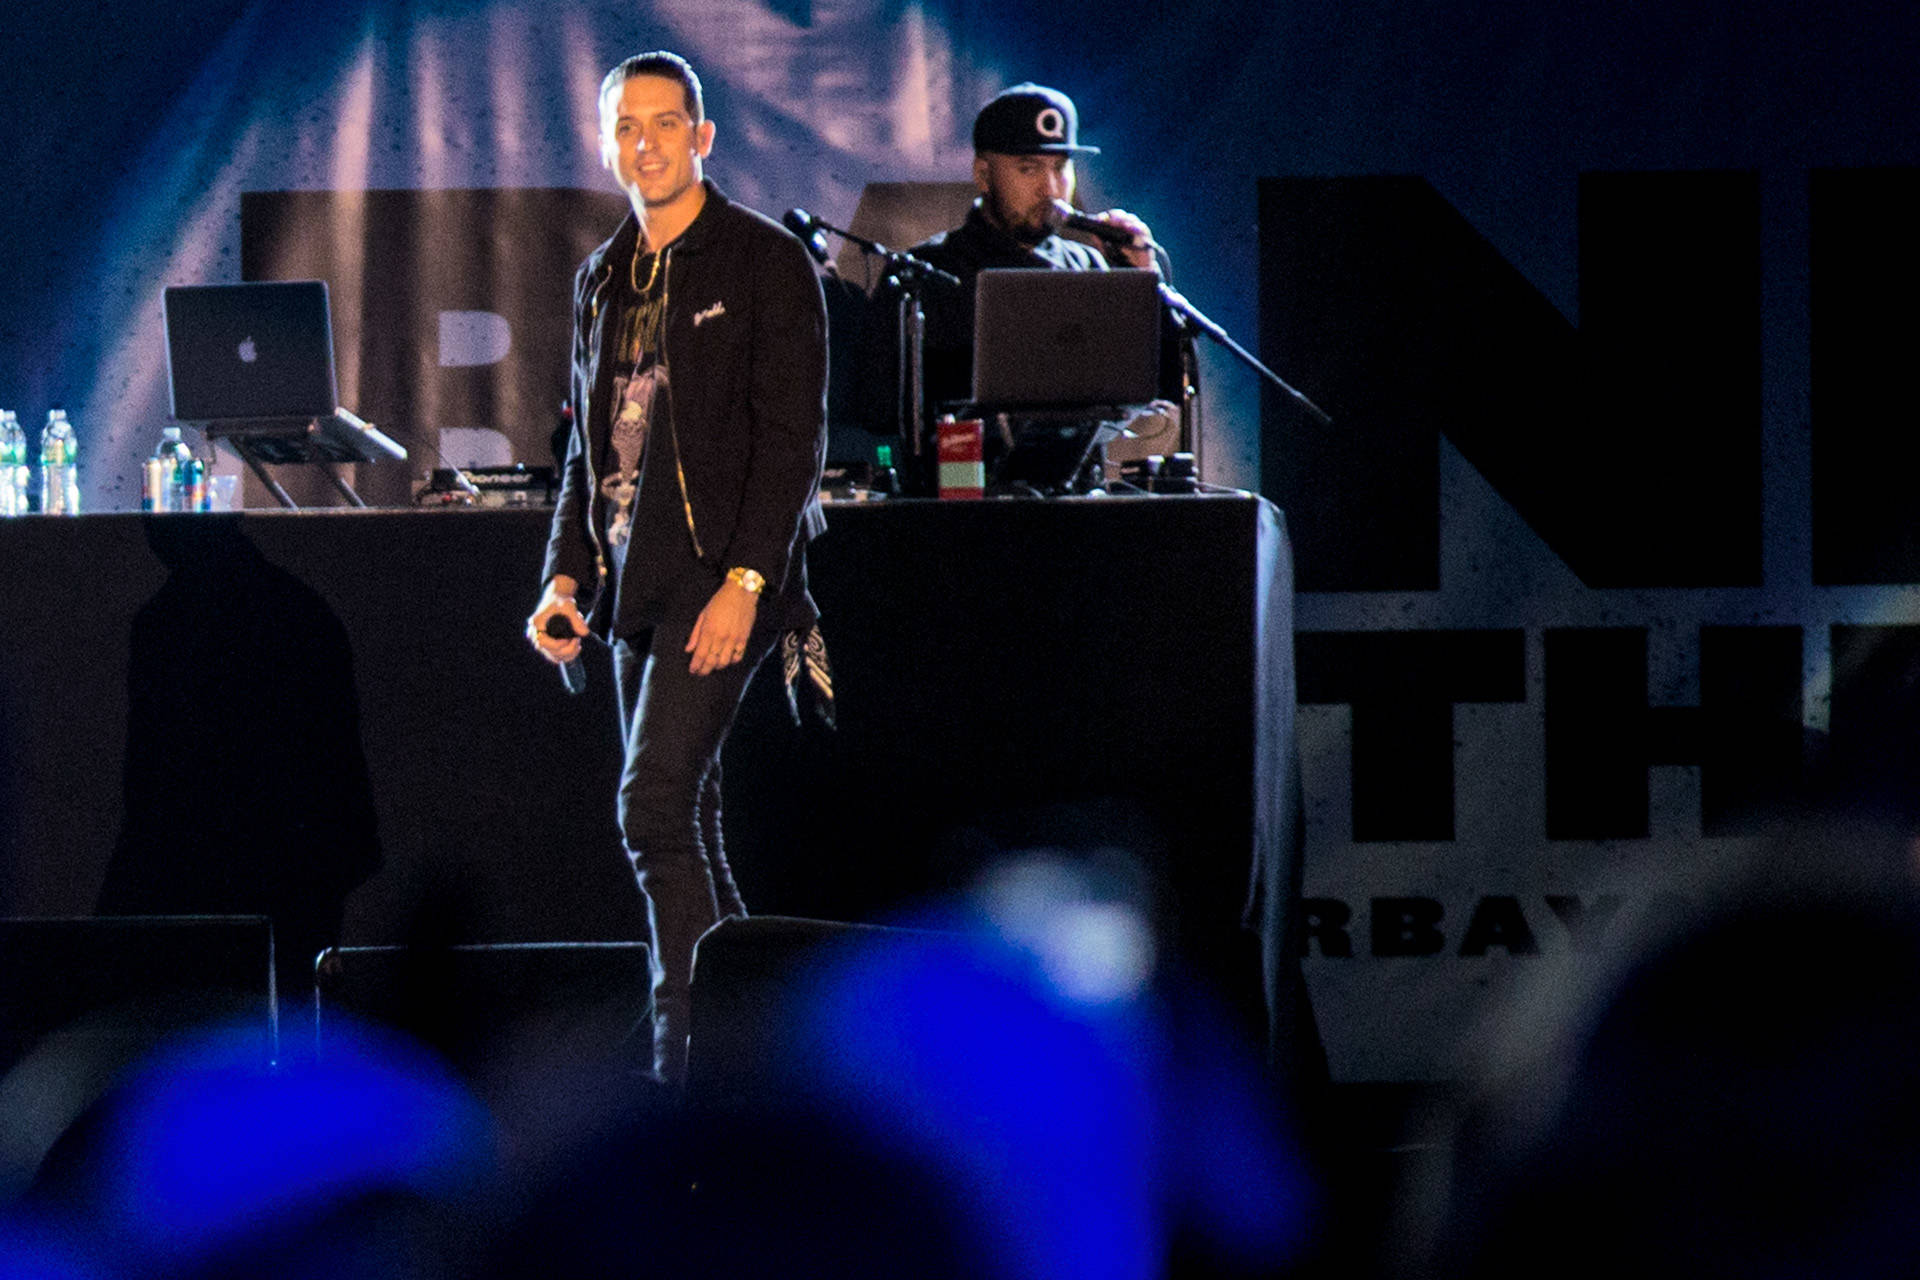 G-Eazy plays Band Together Bay Area, a benefit concert for North Bay Fire relief at AT&T Park on Thursday, November 9. Estefany Gonzalez